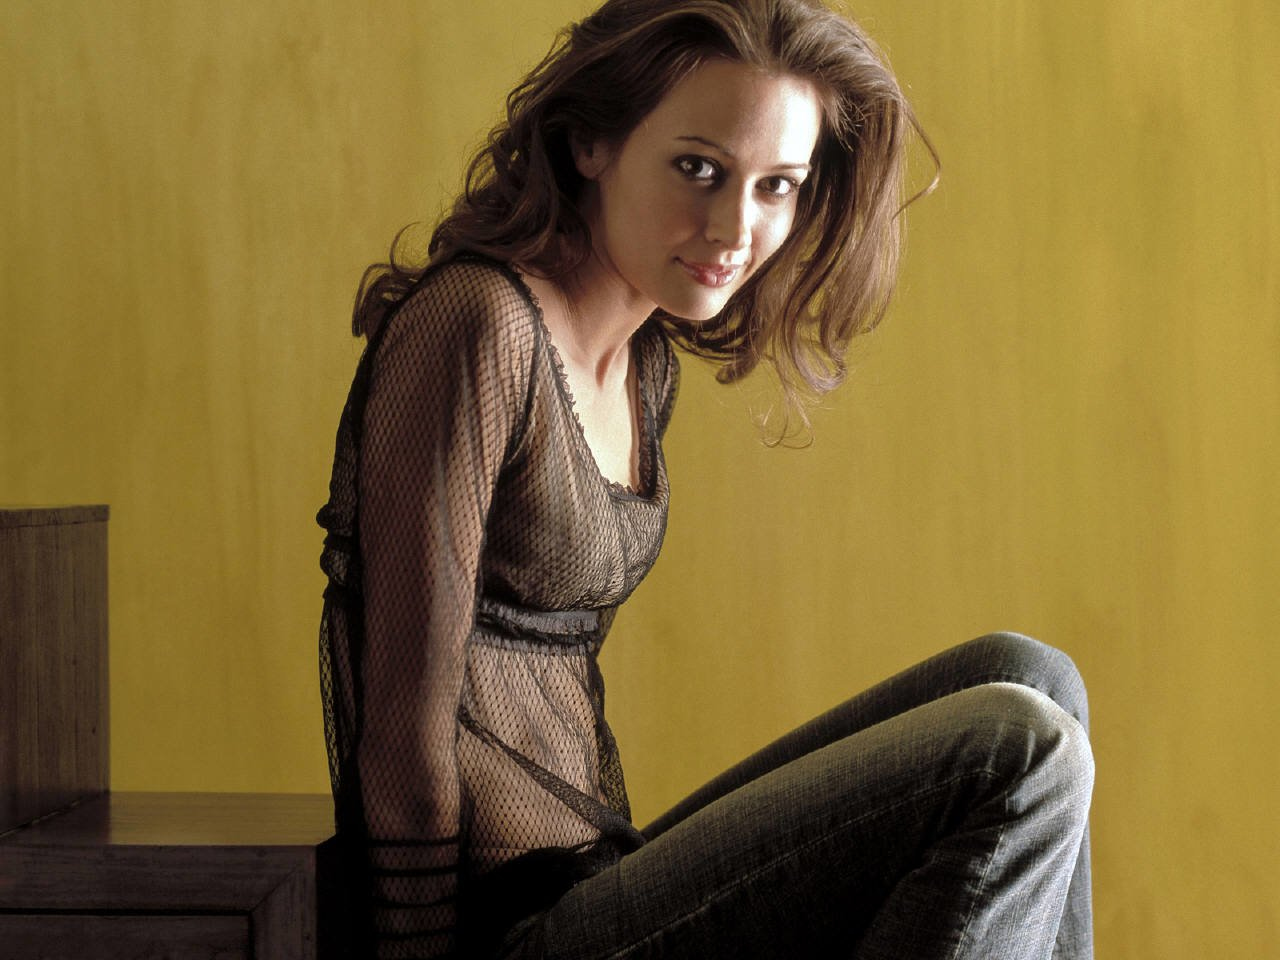 1280x960 - Amy Acker Wallpapers 24